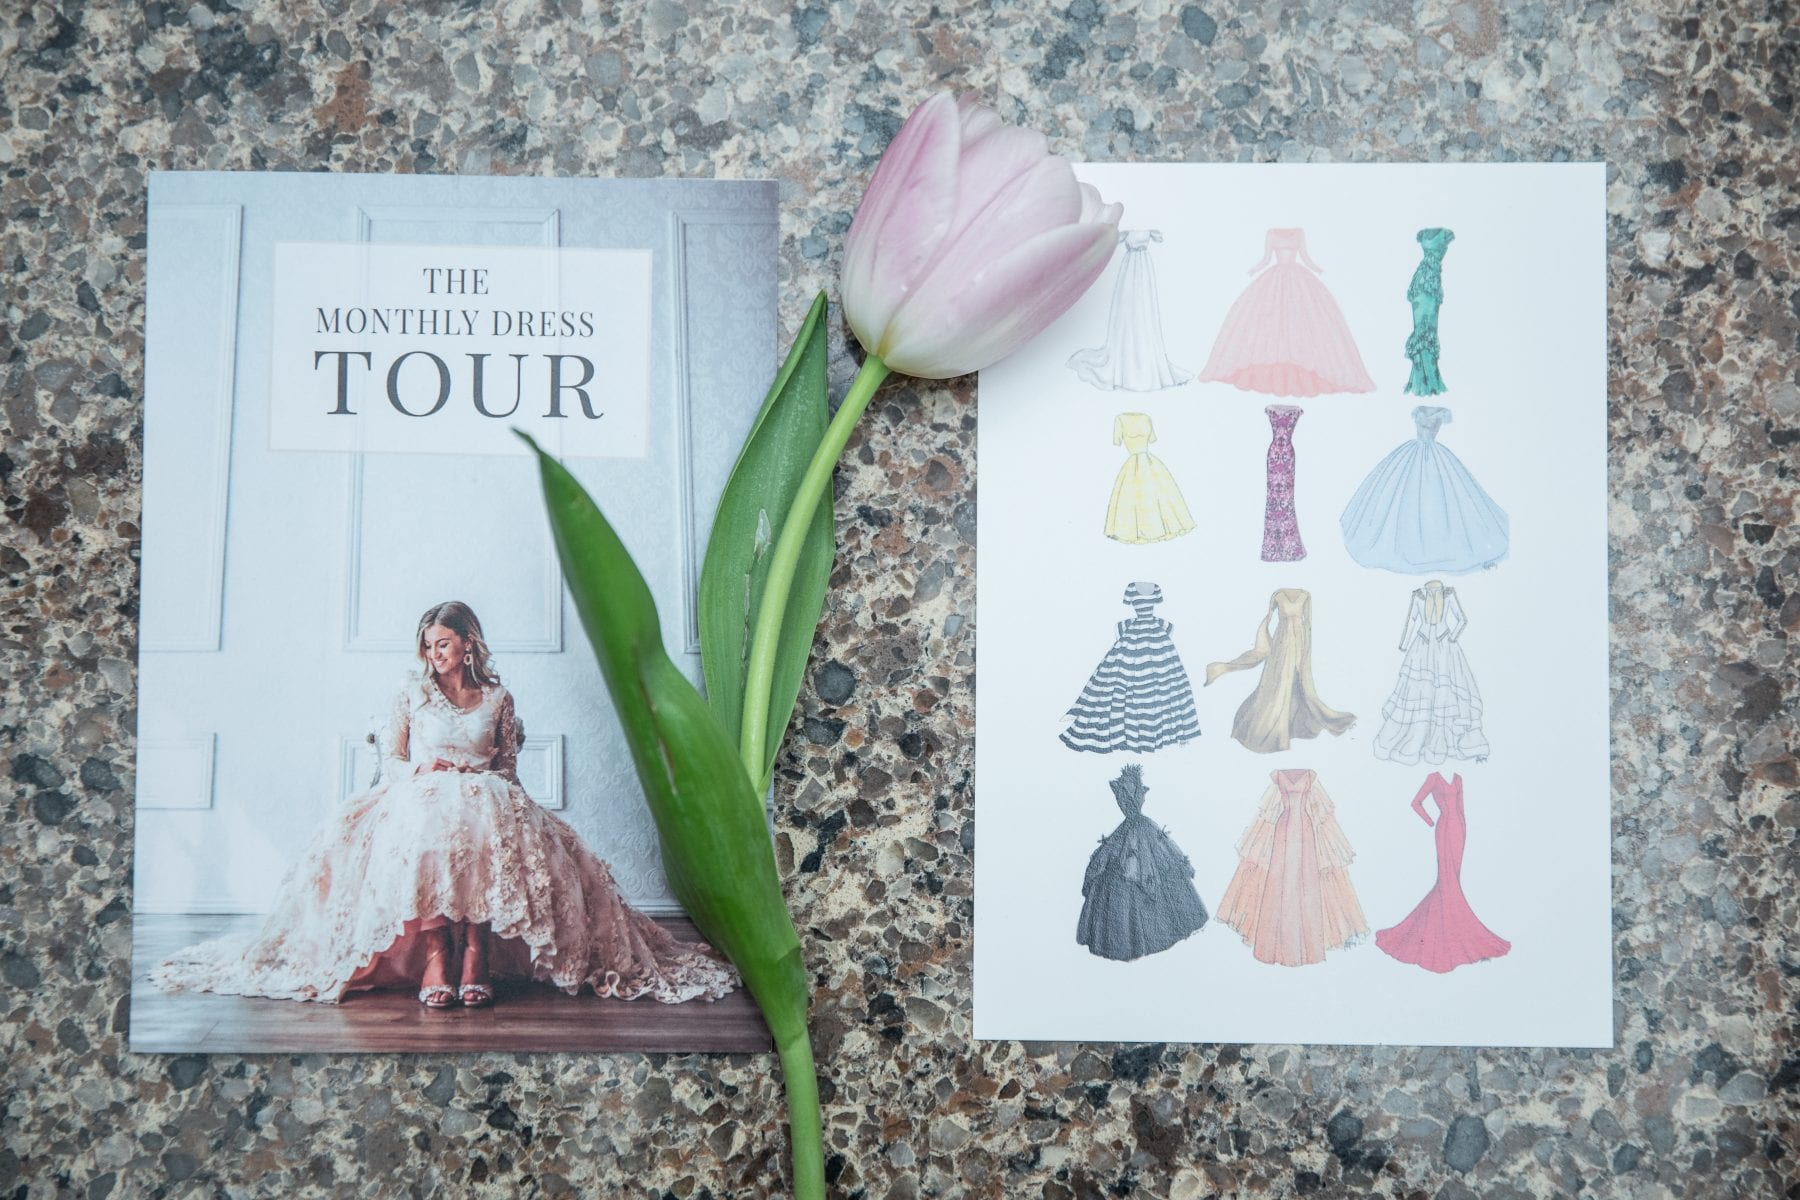 The Monthly Dress Tour